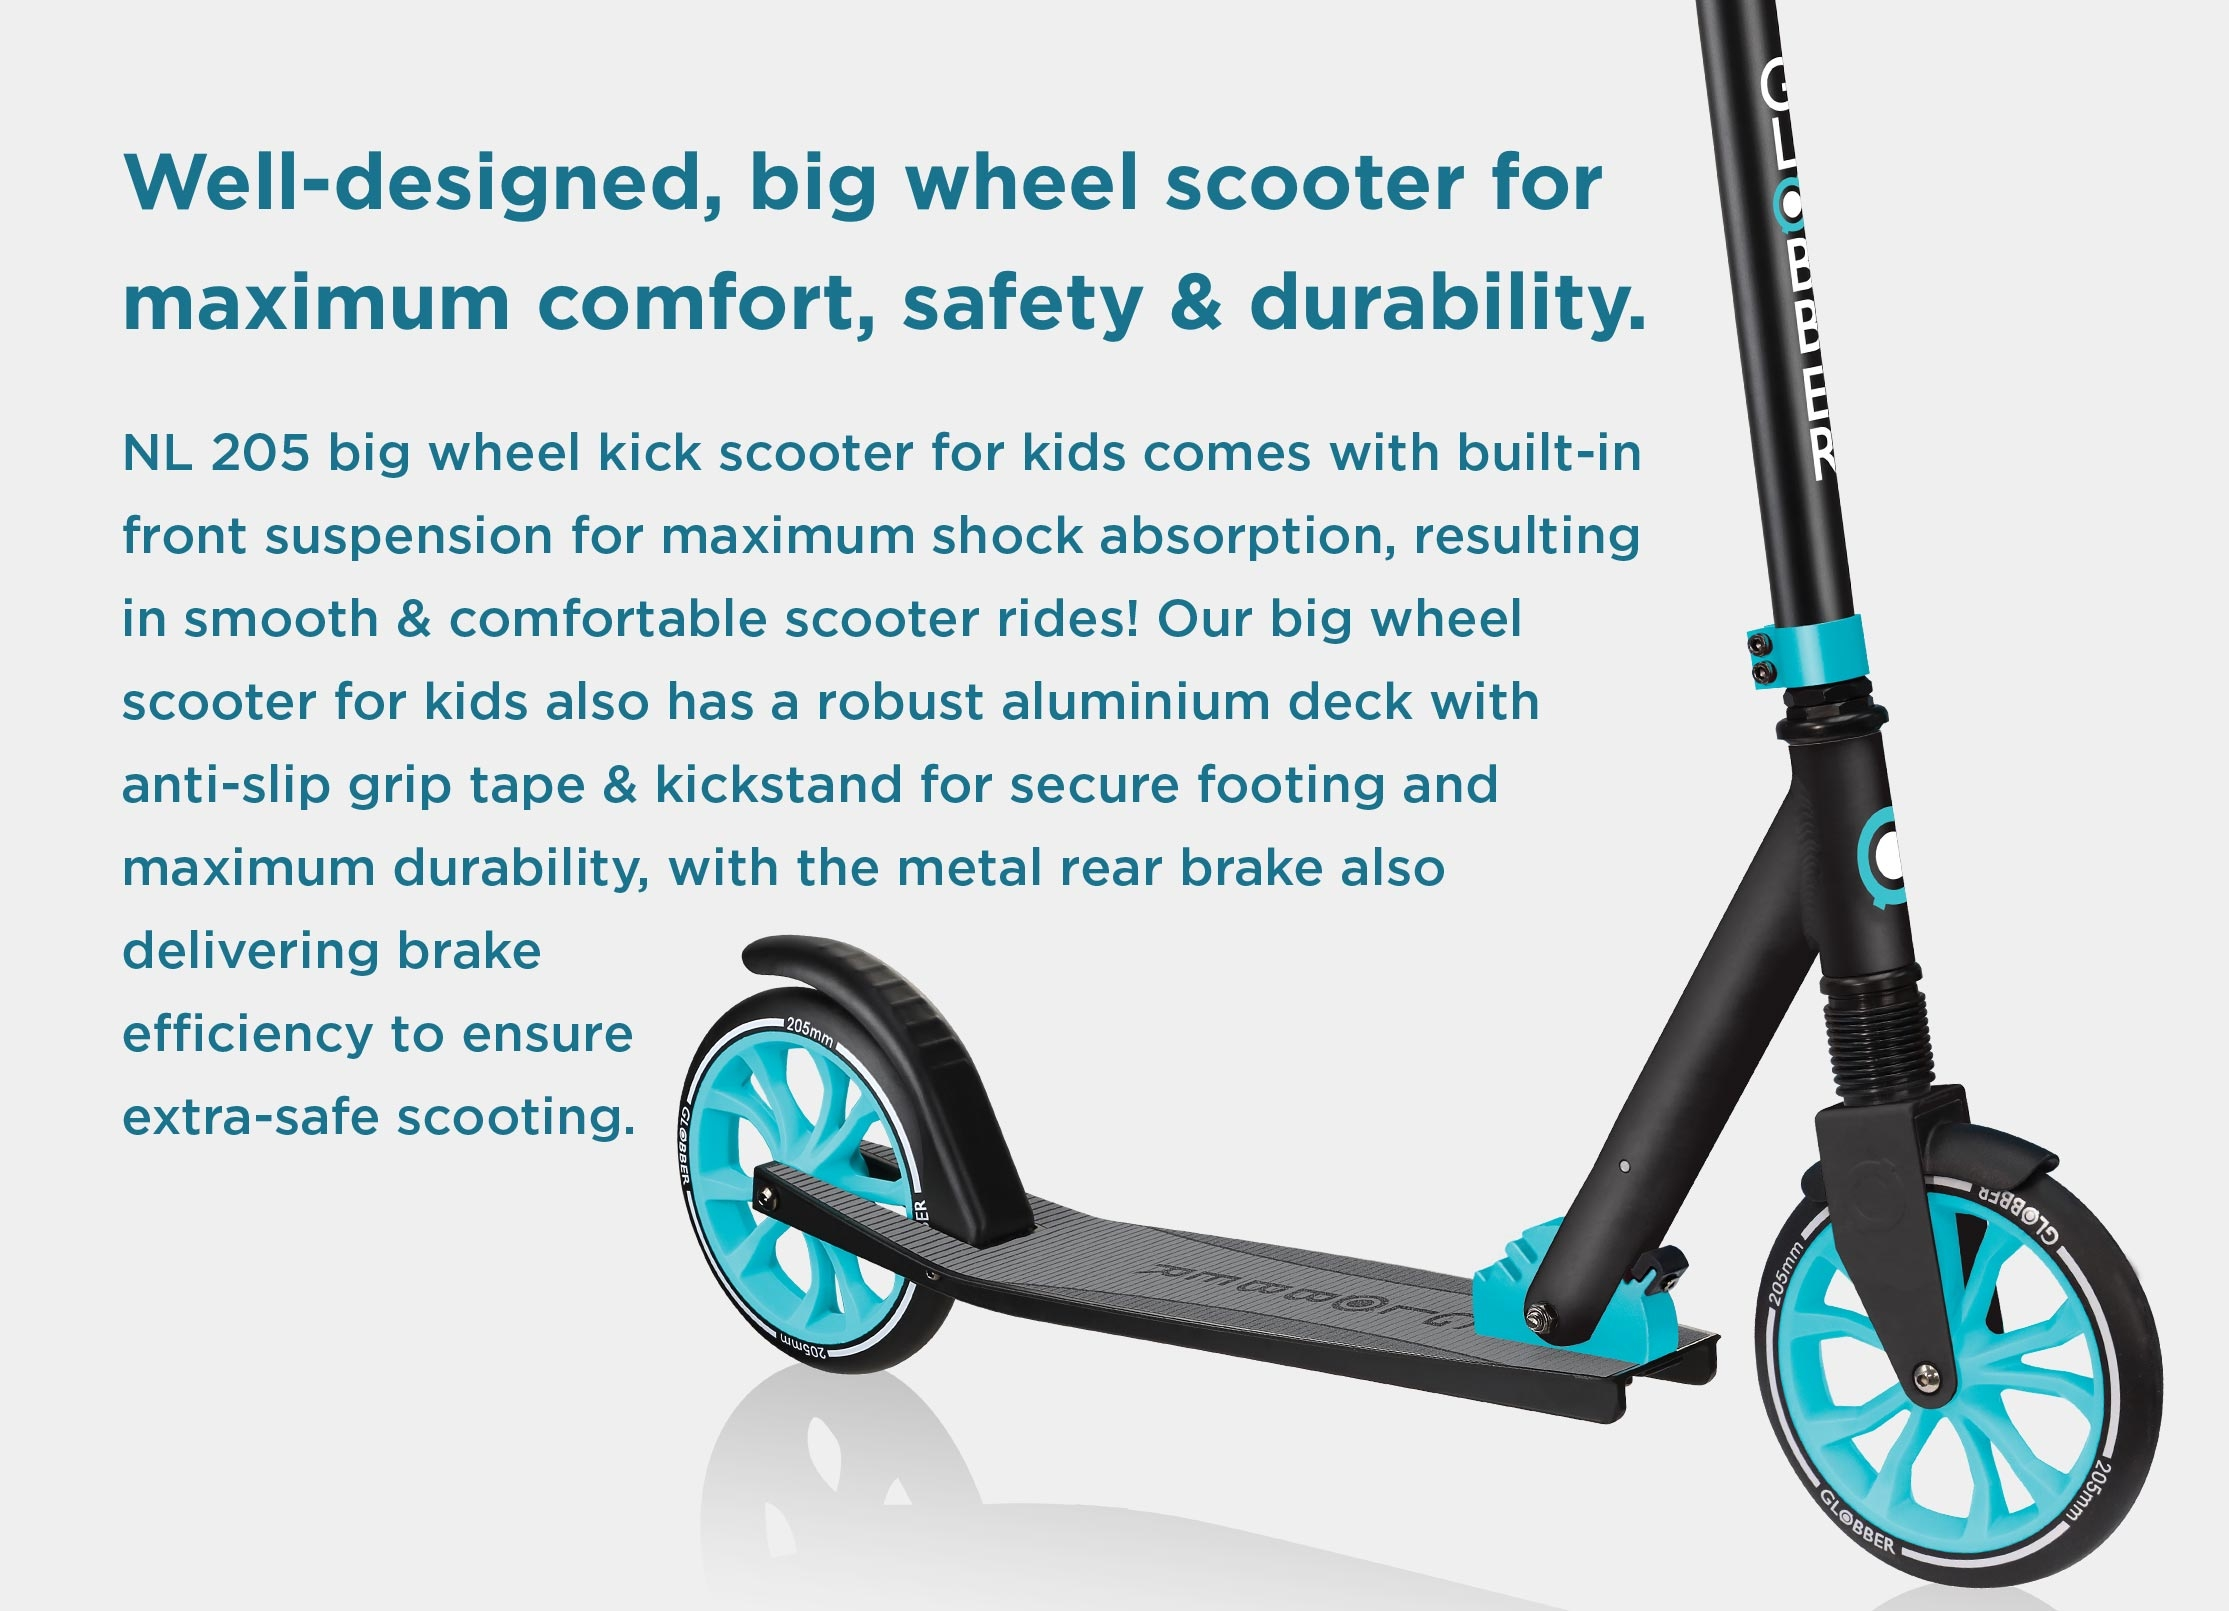 Big wheel scooter for 8 year olds+ designed for maximum comfort, durability and safety